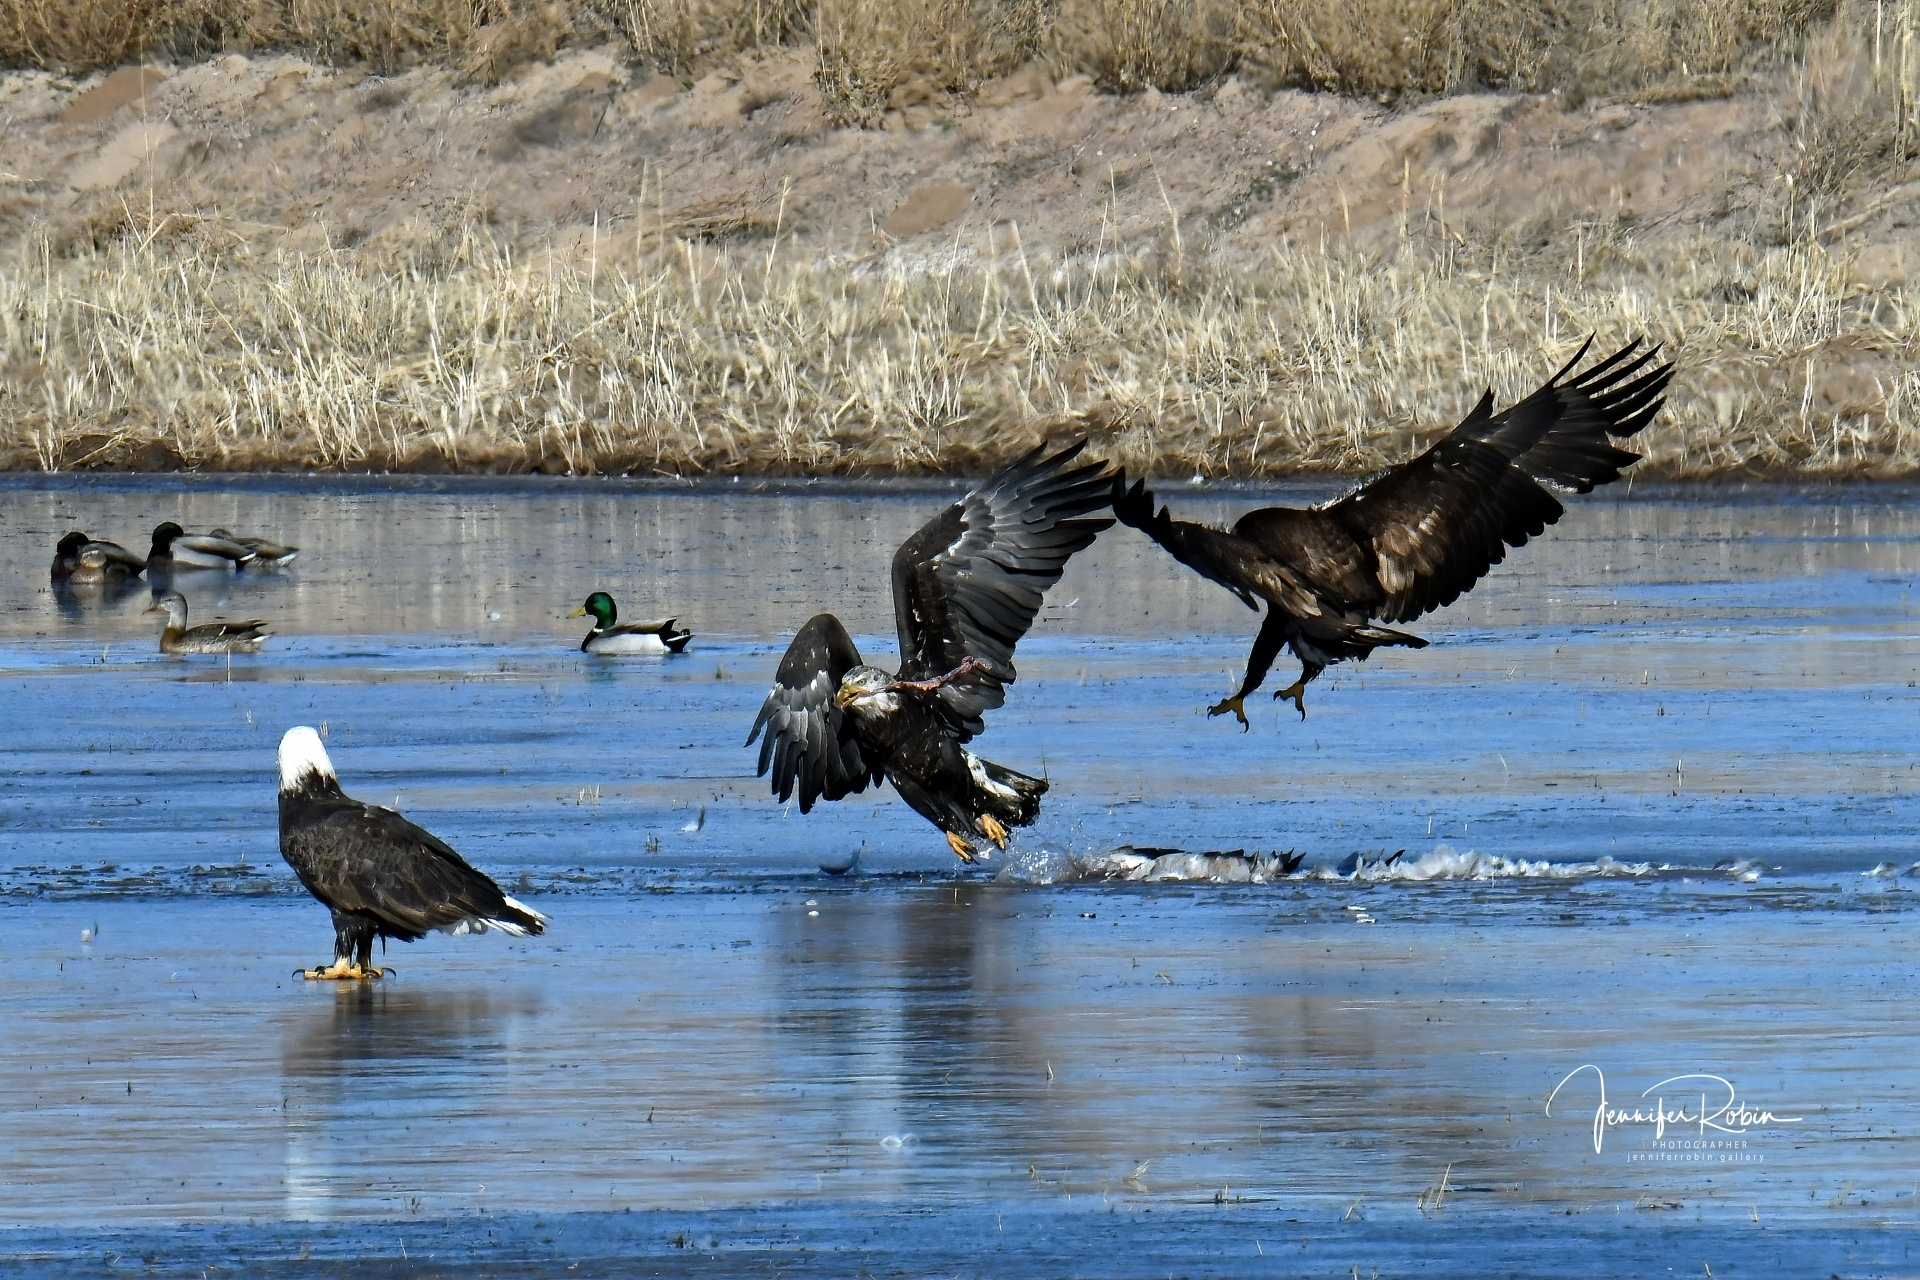 A Bald Eagle  family feed and fight over a Sandhill crane carcass as they try to stand on thin ice.